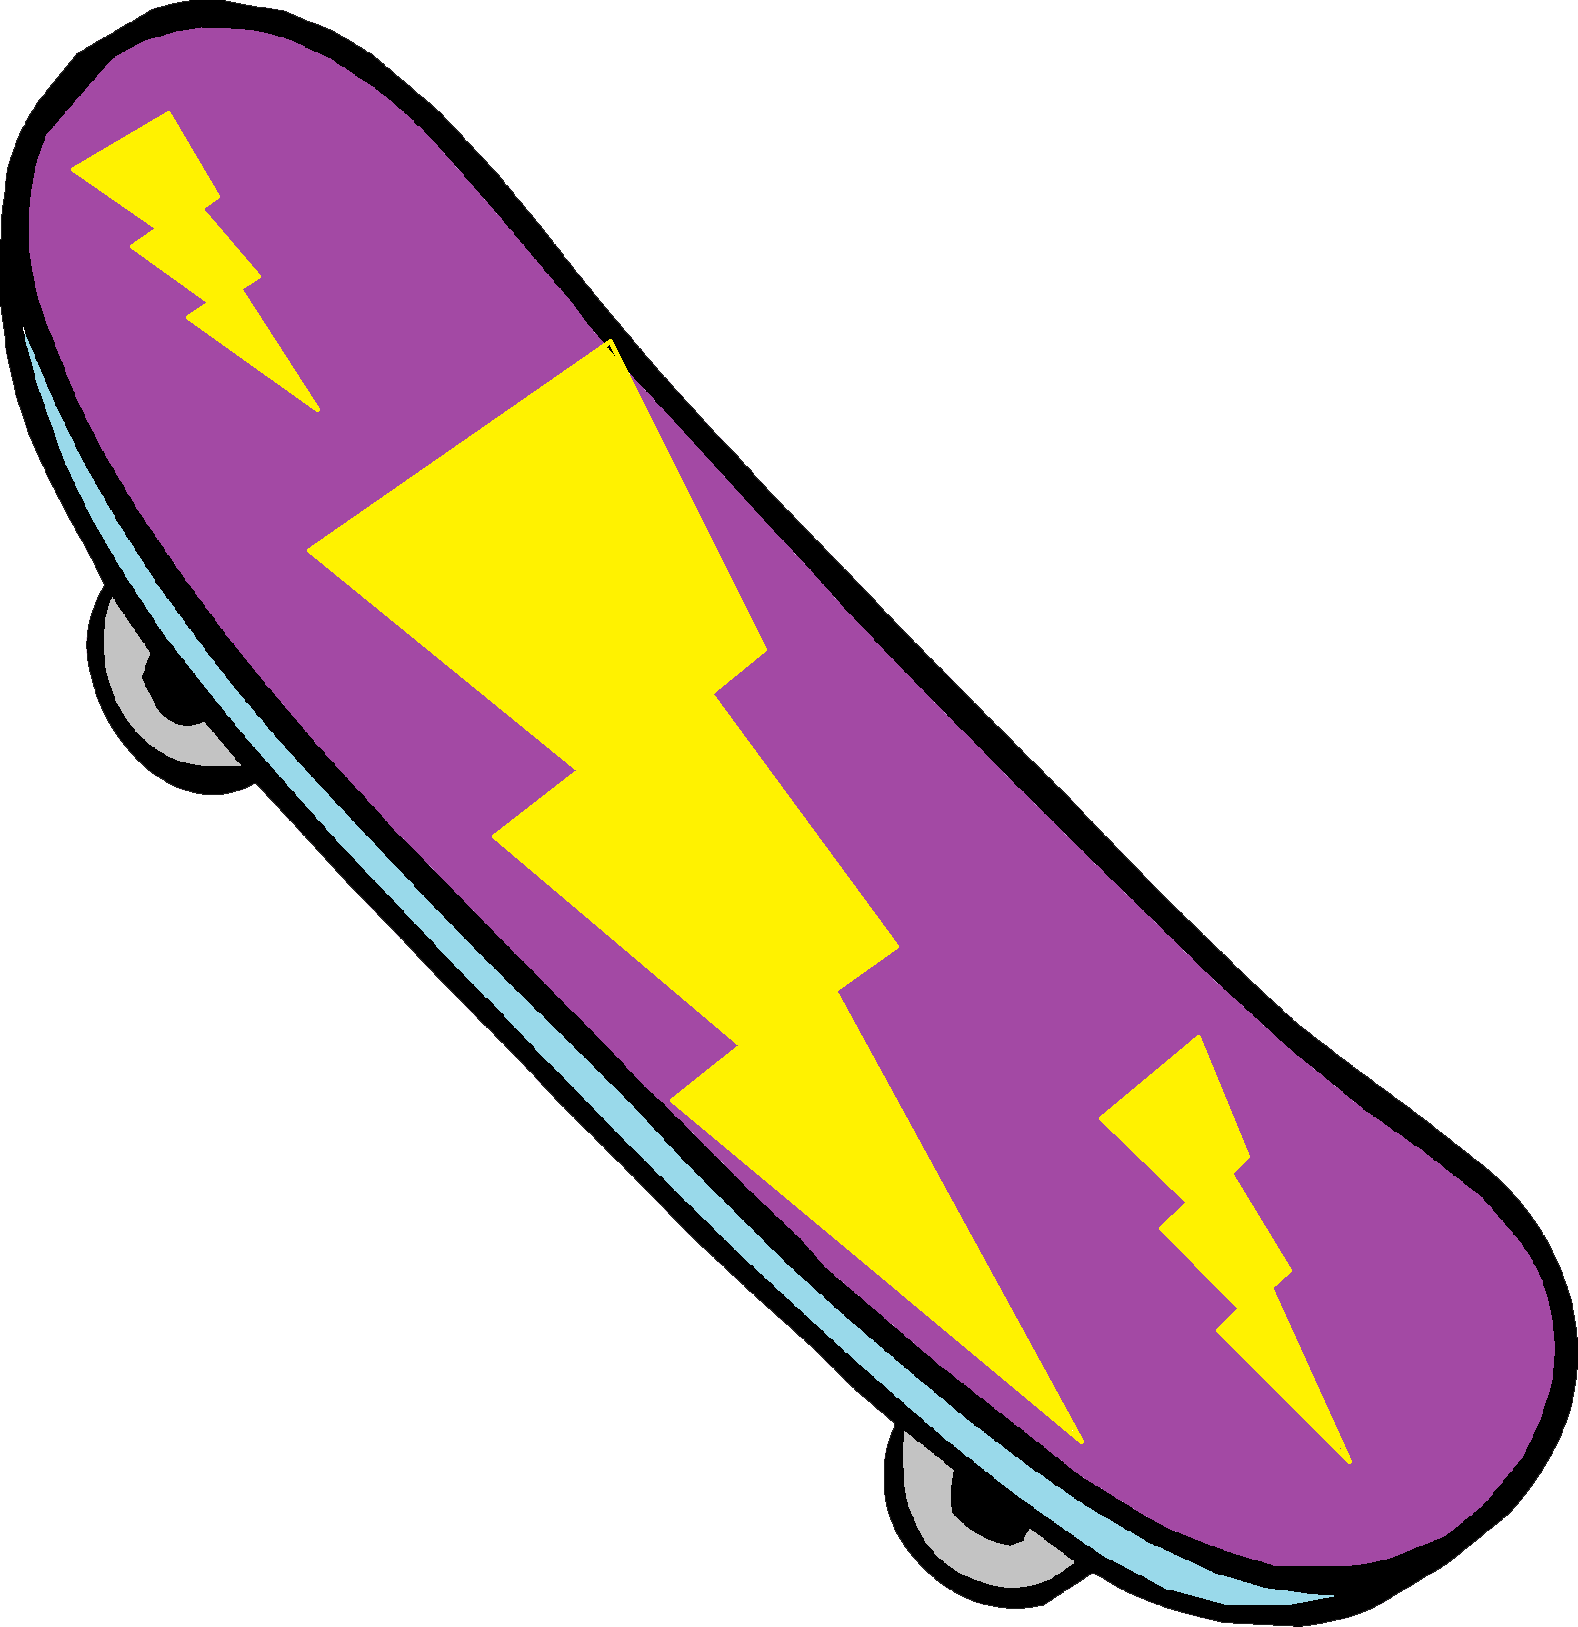 Skateboard cartoon png. Collection of clipart